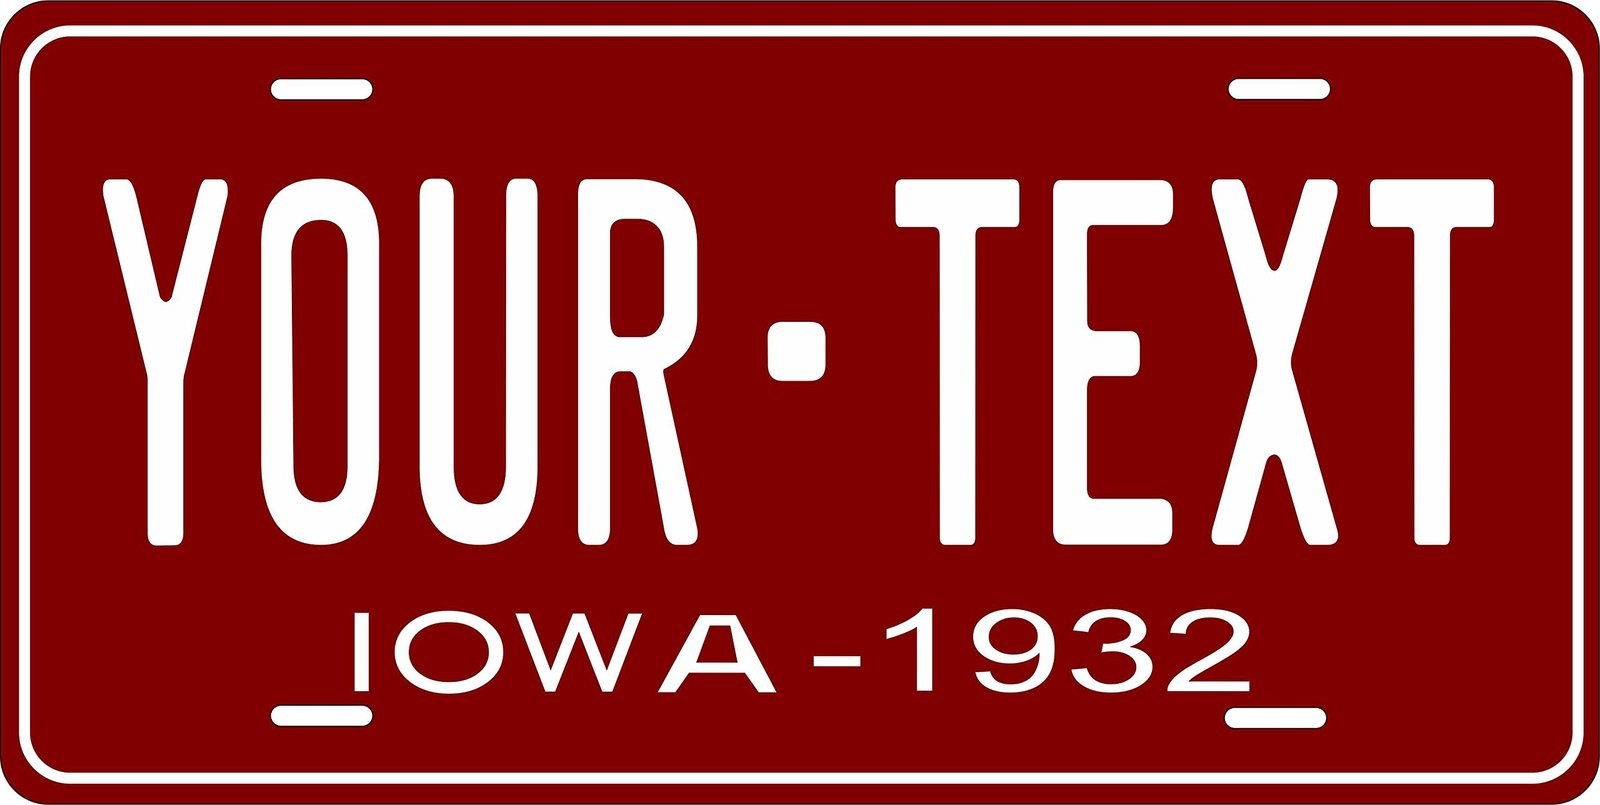 Iowa 1932 Personalized Tag Vehicle Car Auto License Plate